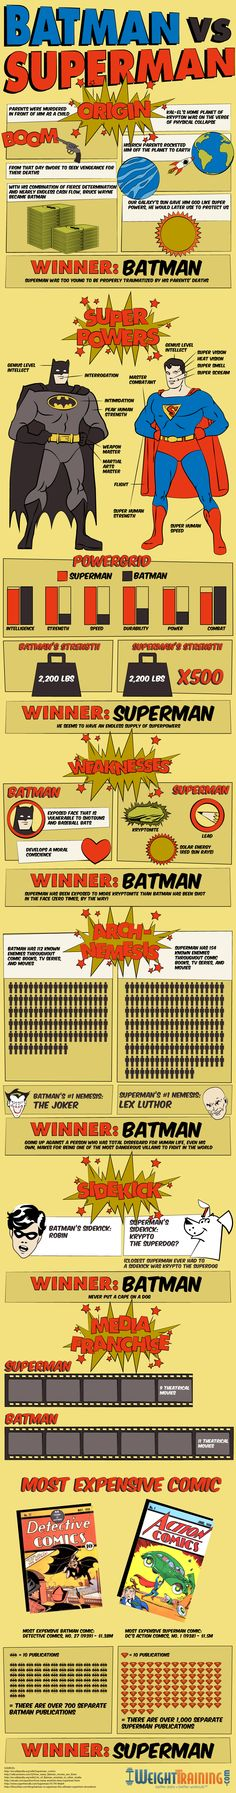 Batman vs. Superman....who wins the weight training battle?